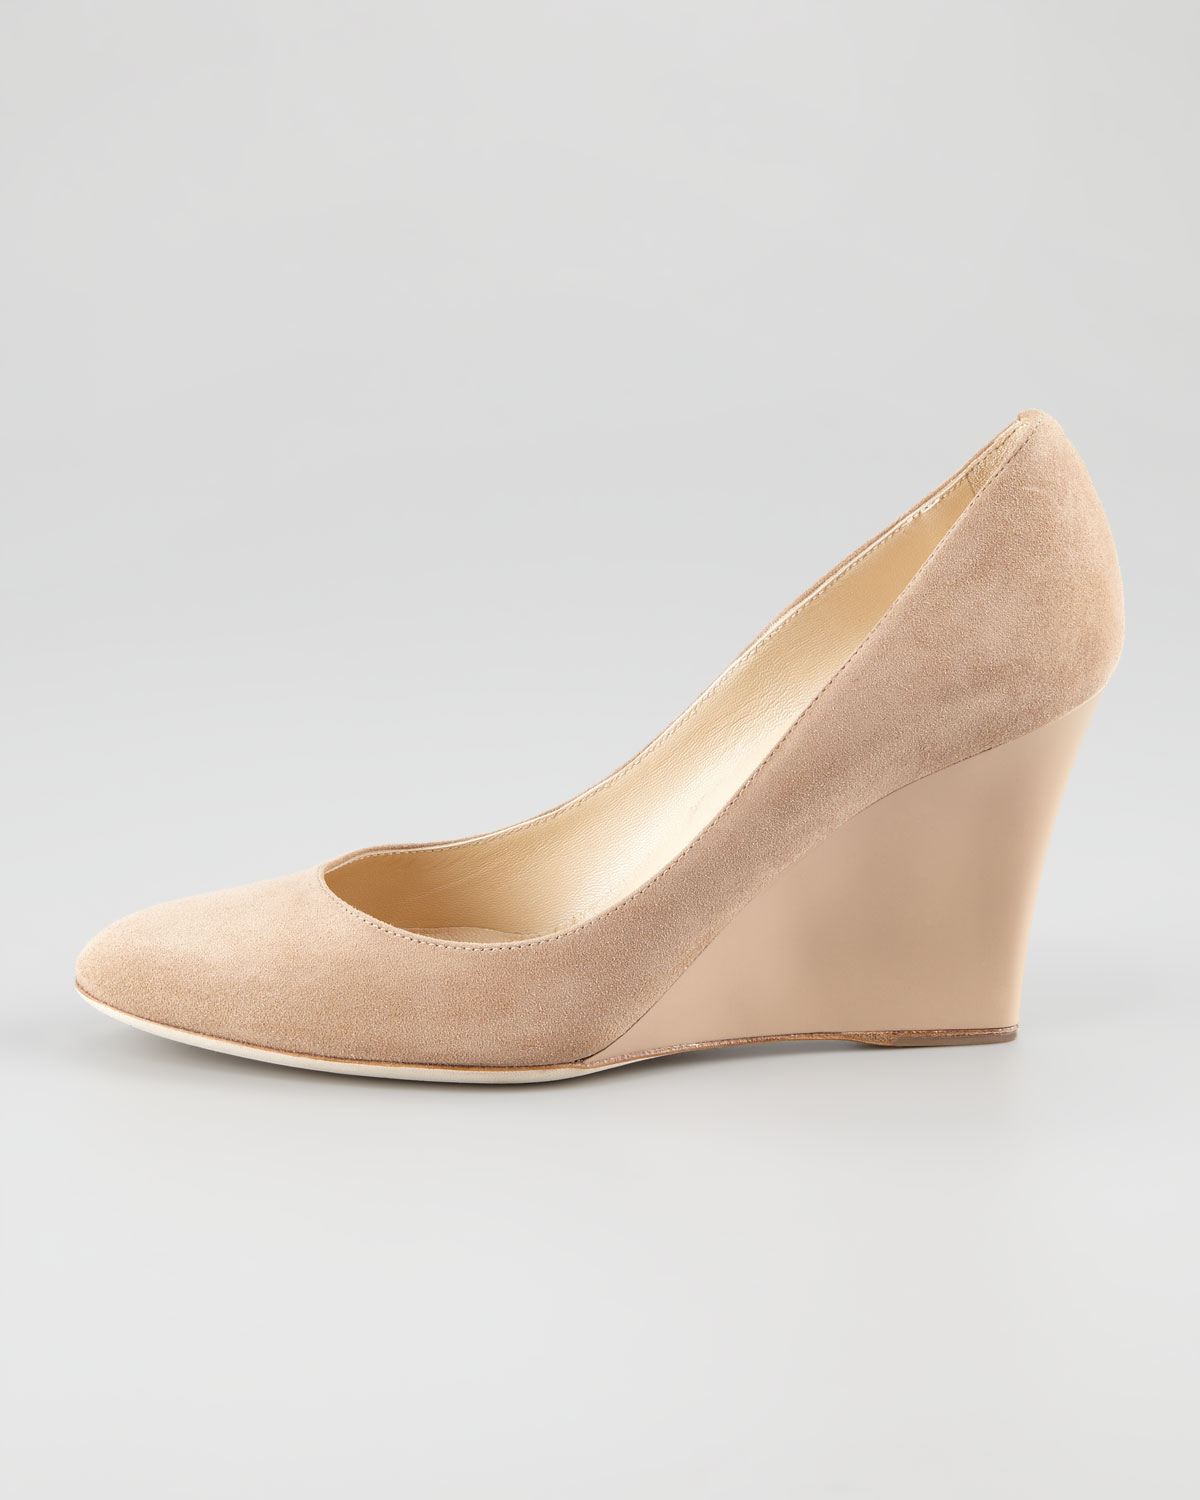 Free shipping & free returns on women's products on clearance at Neiman Marcus Last Call. Shop for wedge sandals, slide sandals & maxi dresses at grinabelel.tk